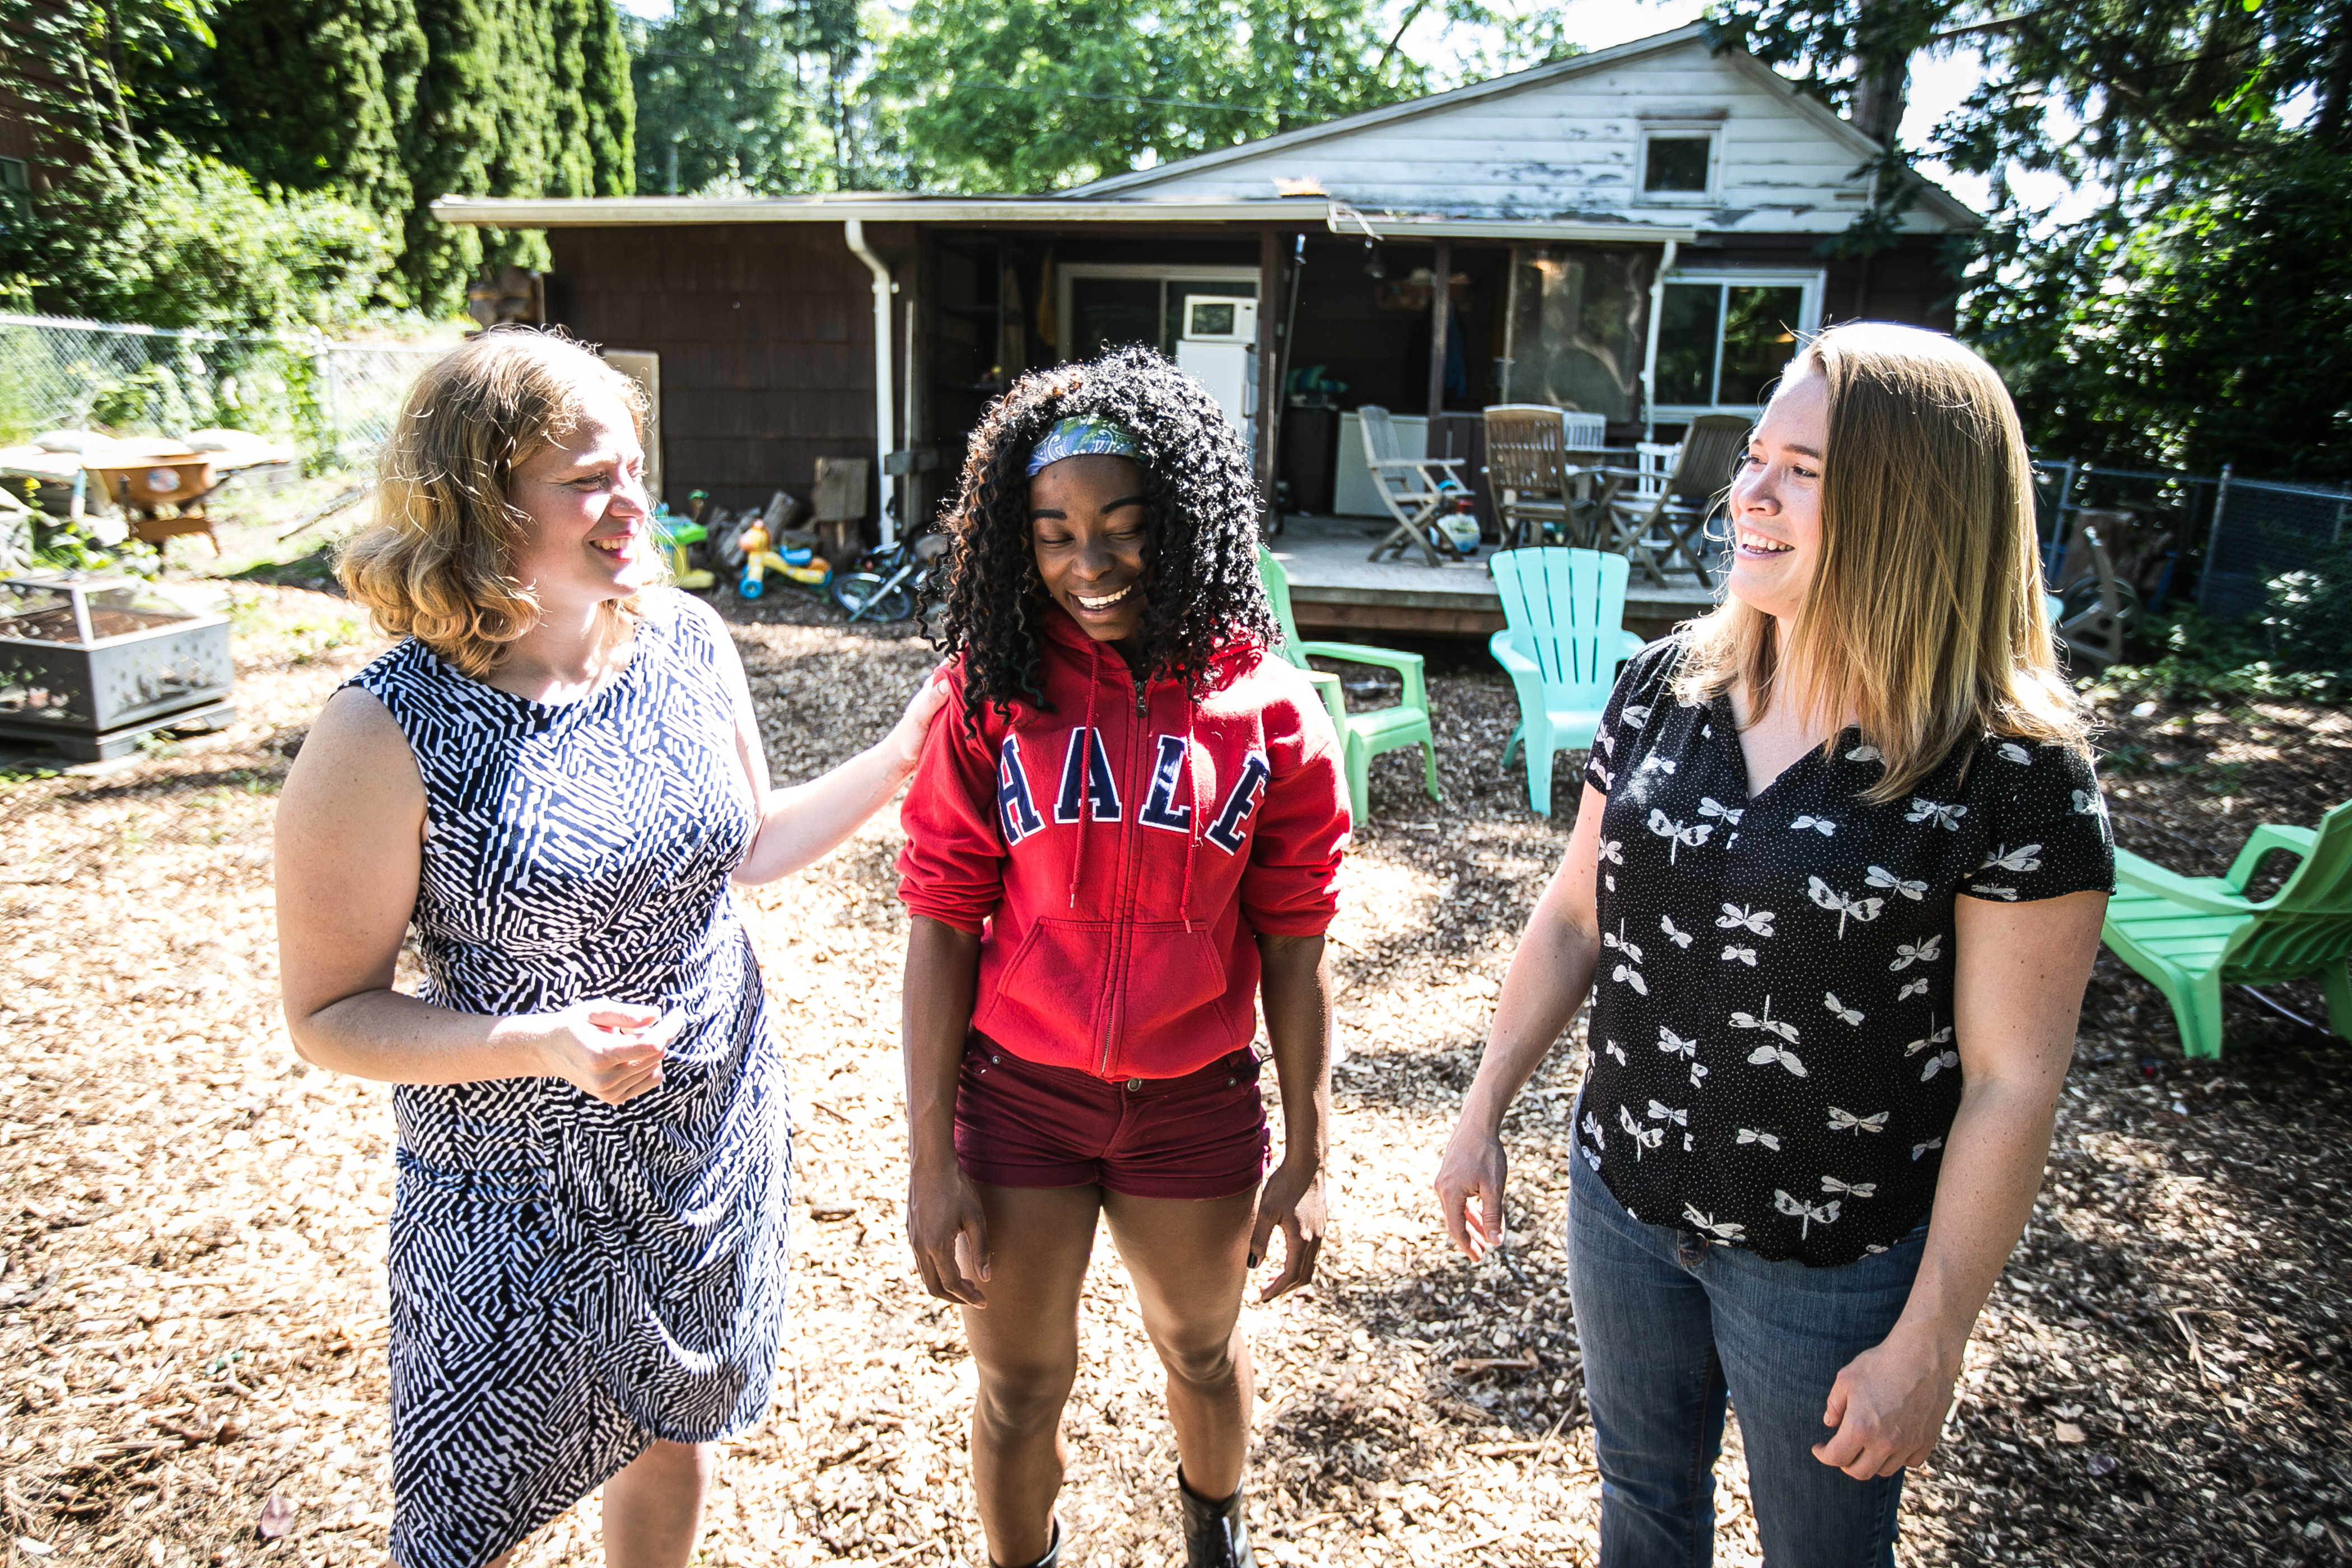 Crisis in foster care system leaves kids rootless, vulnerable